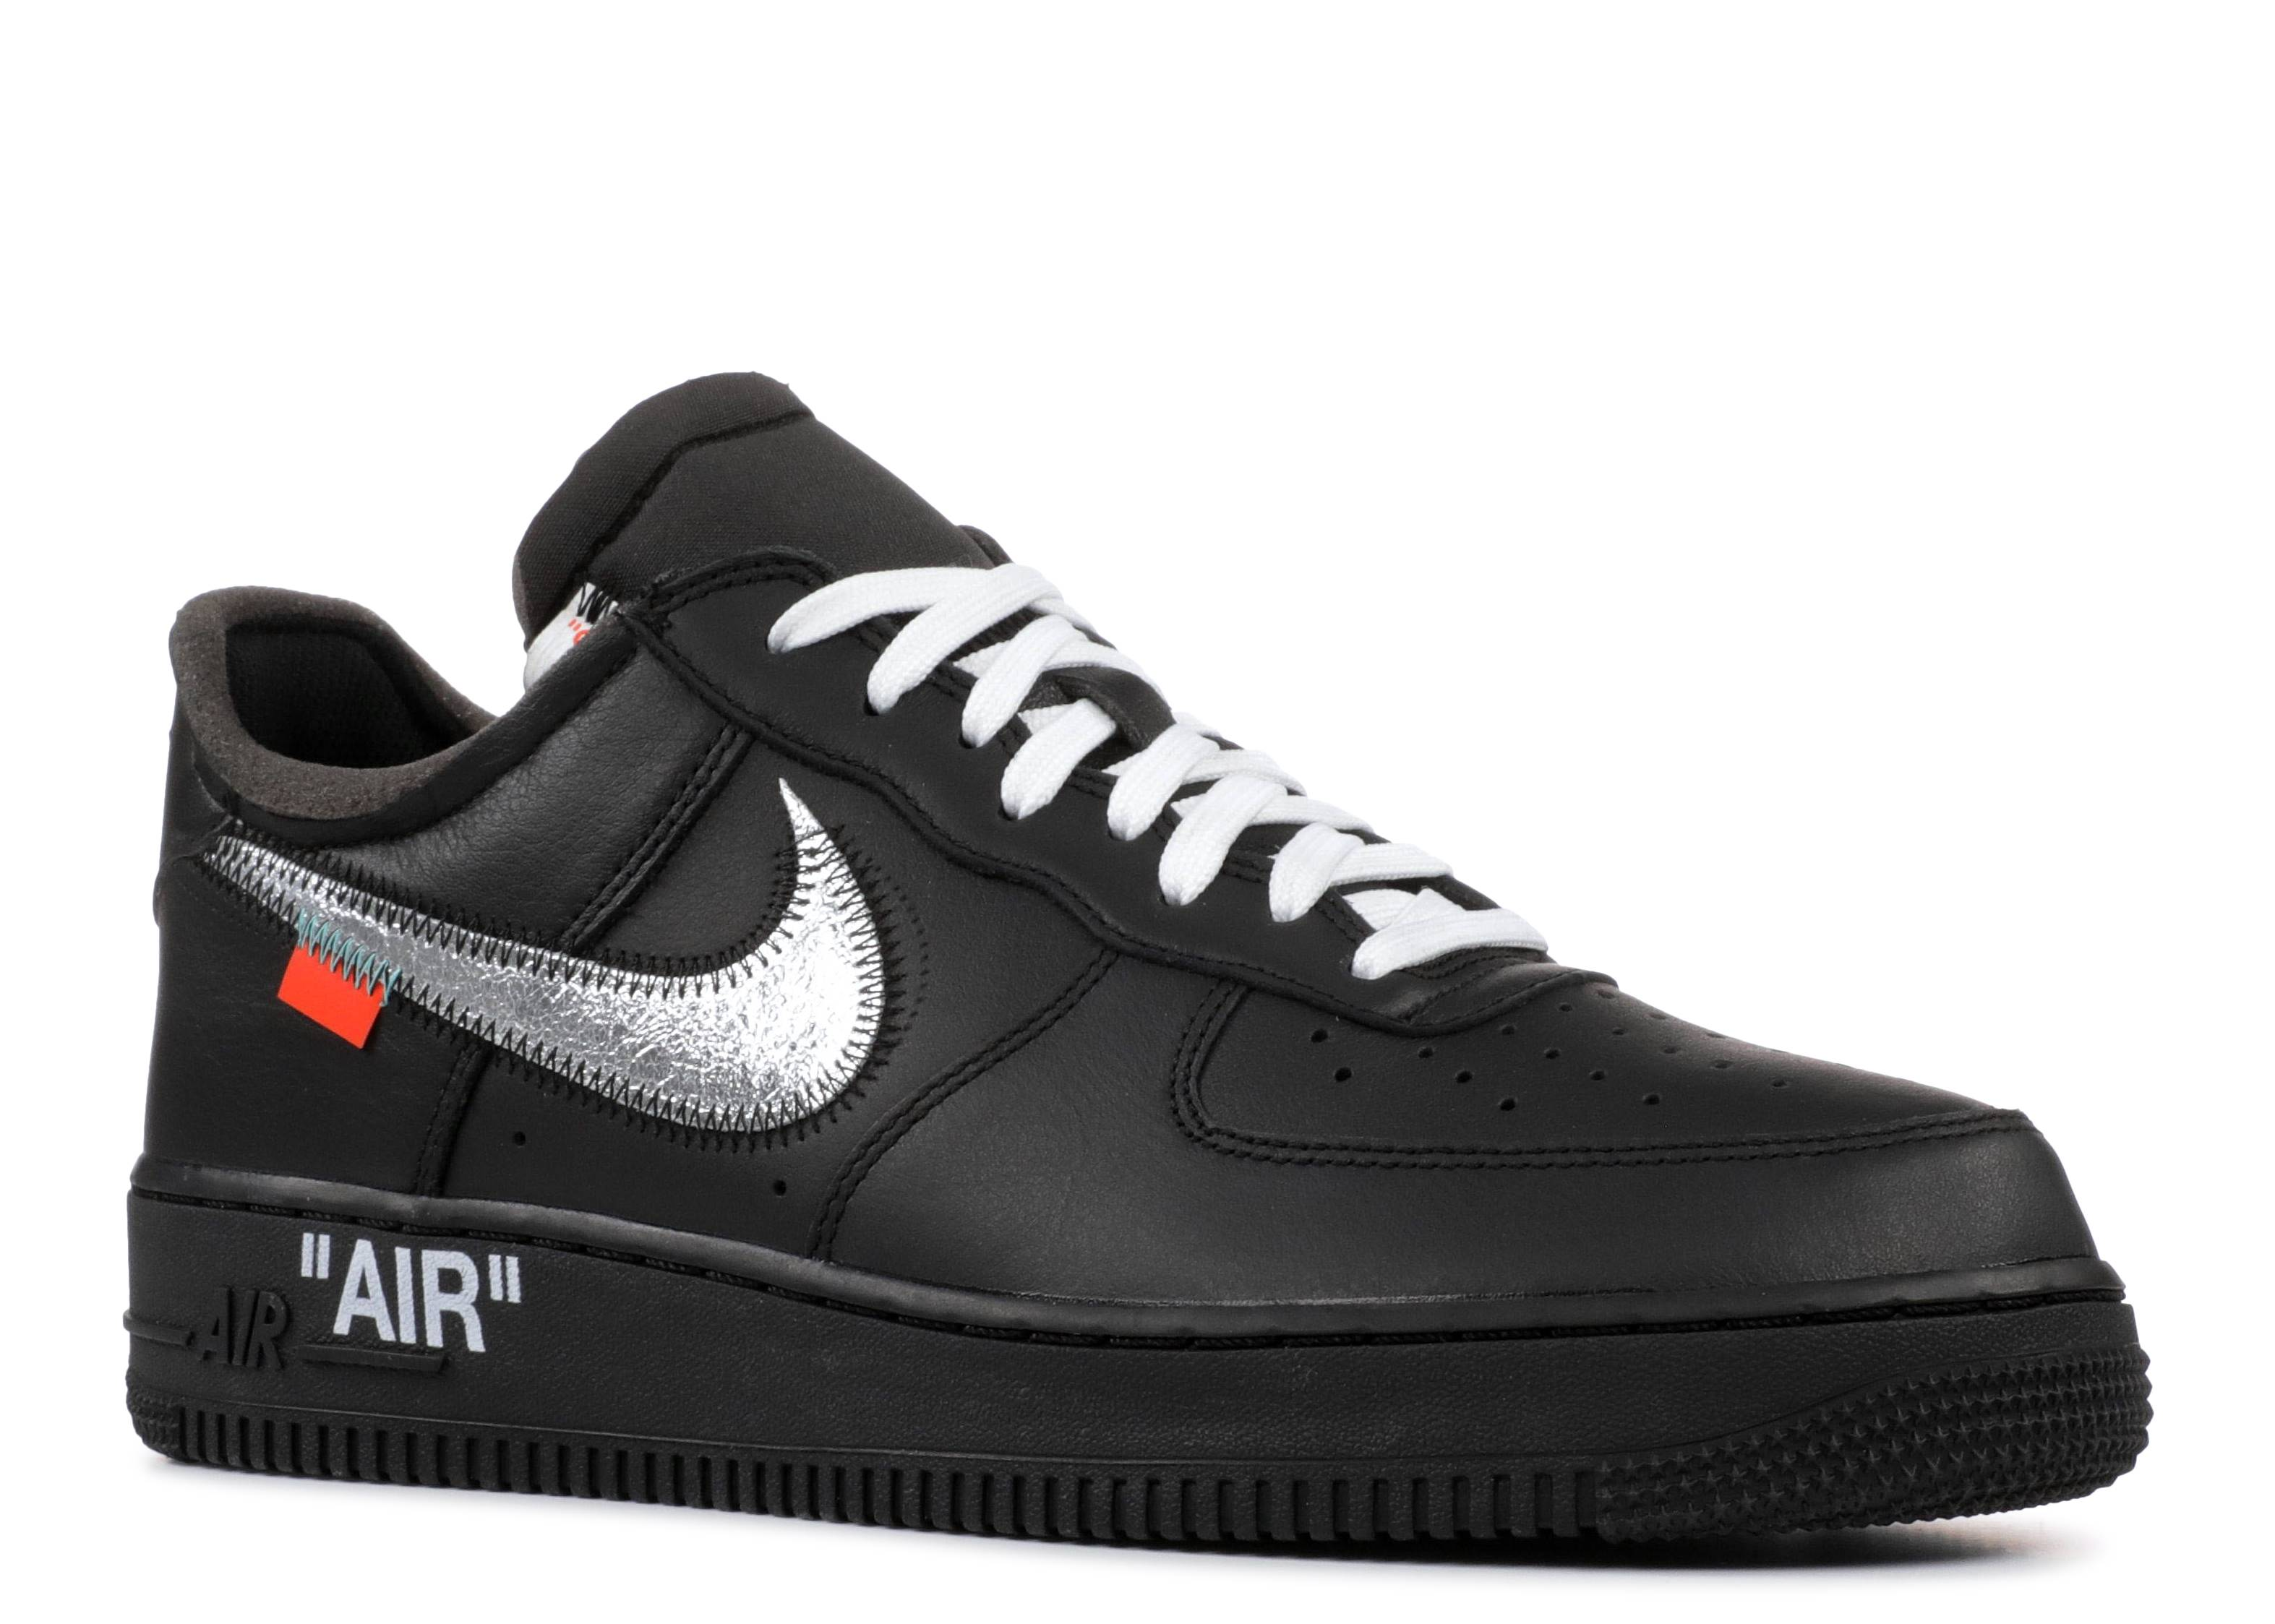 Viaje Sermón eximir  Off White X Air Force 1 Low '07 'MoMA' - Nike - AV5210 001 - black/metallic  silver-black | Flight Club